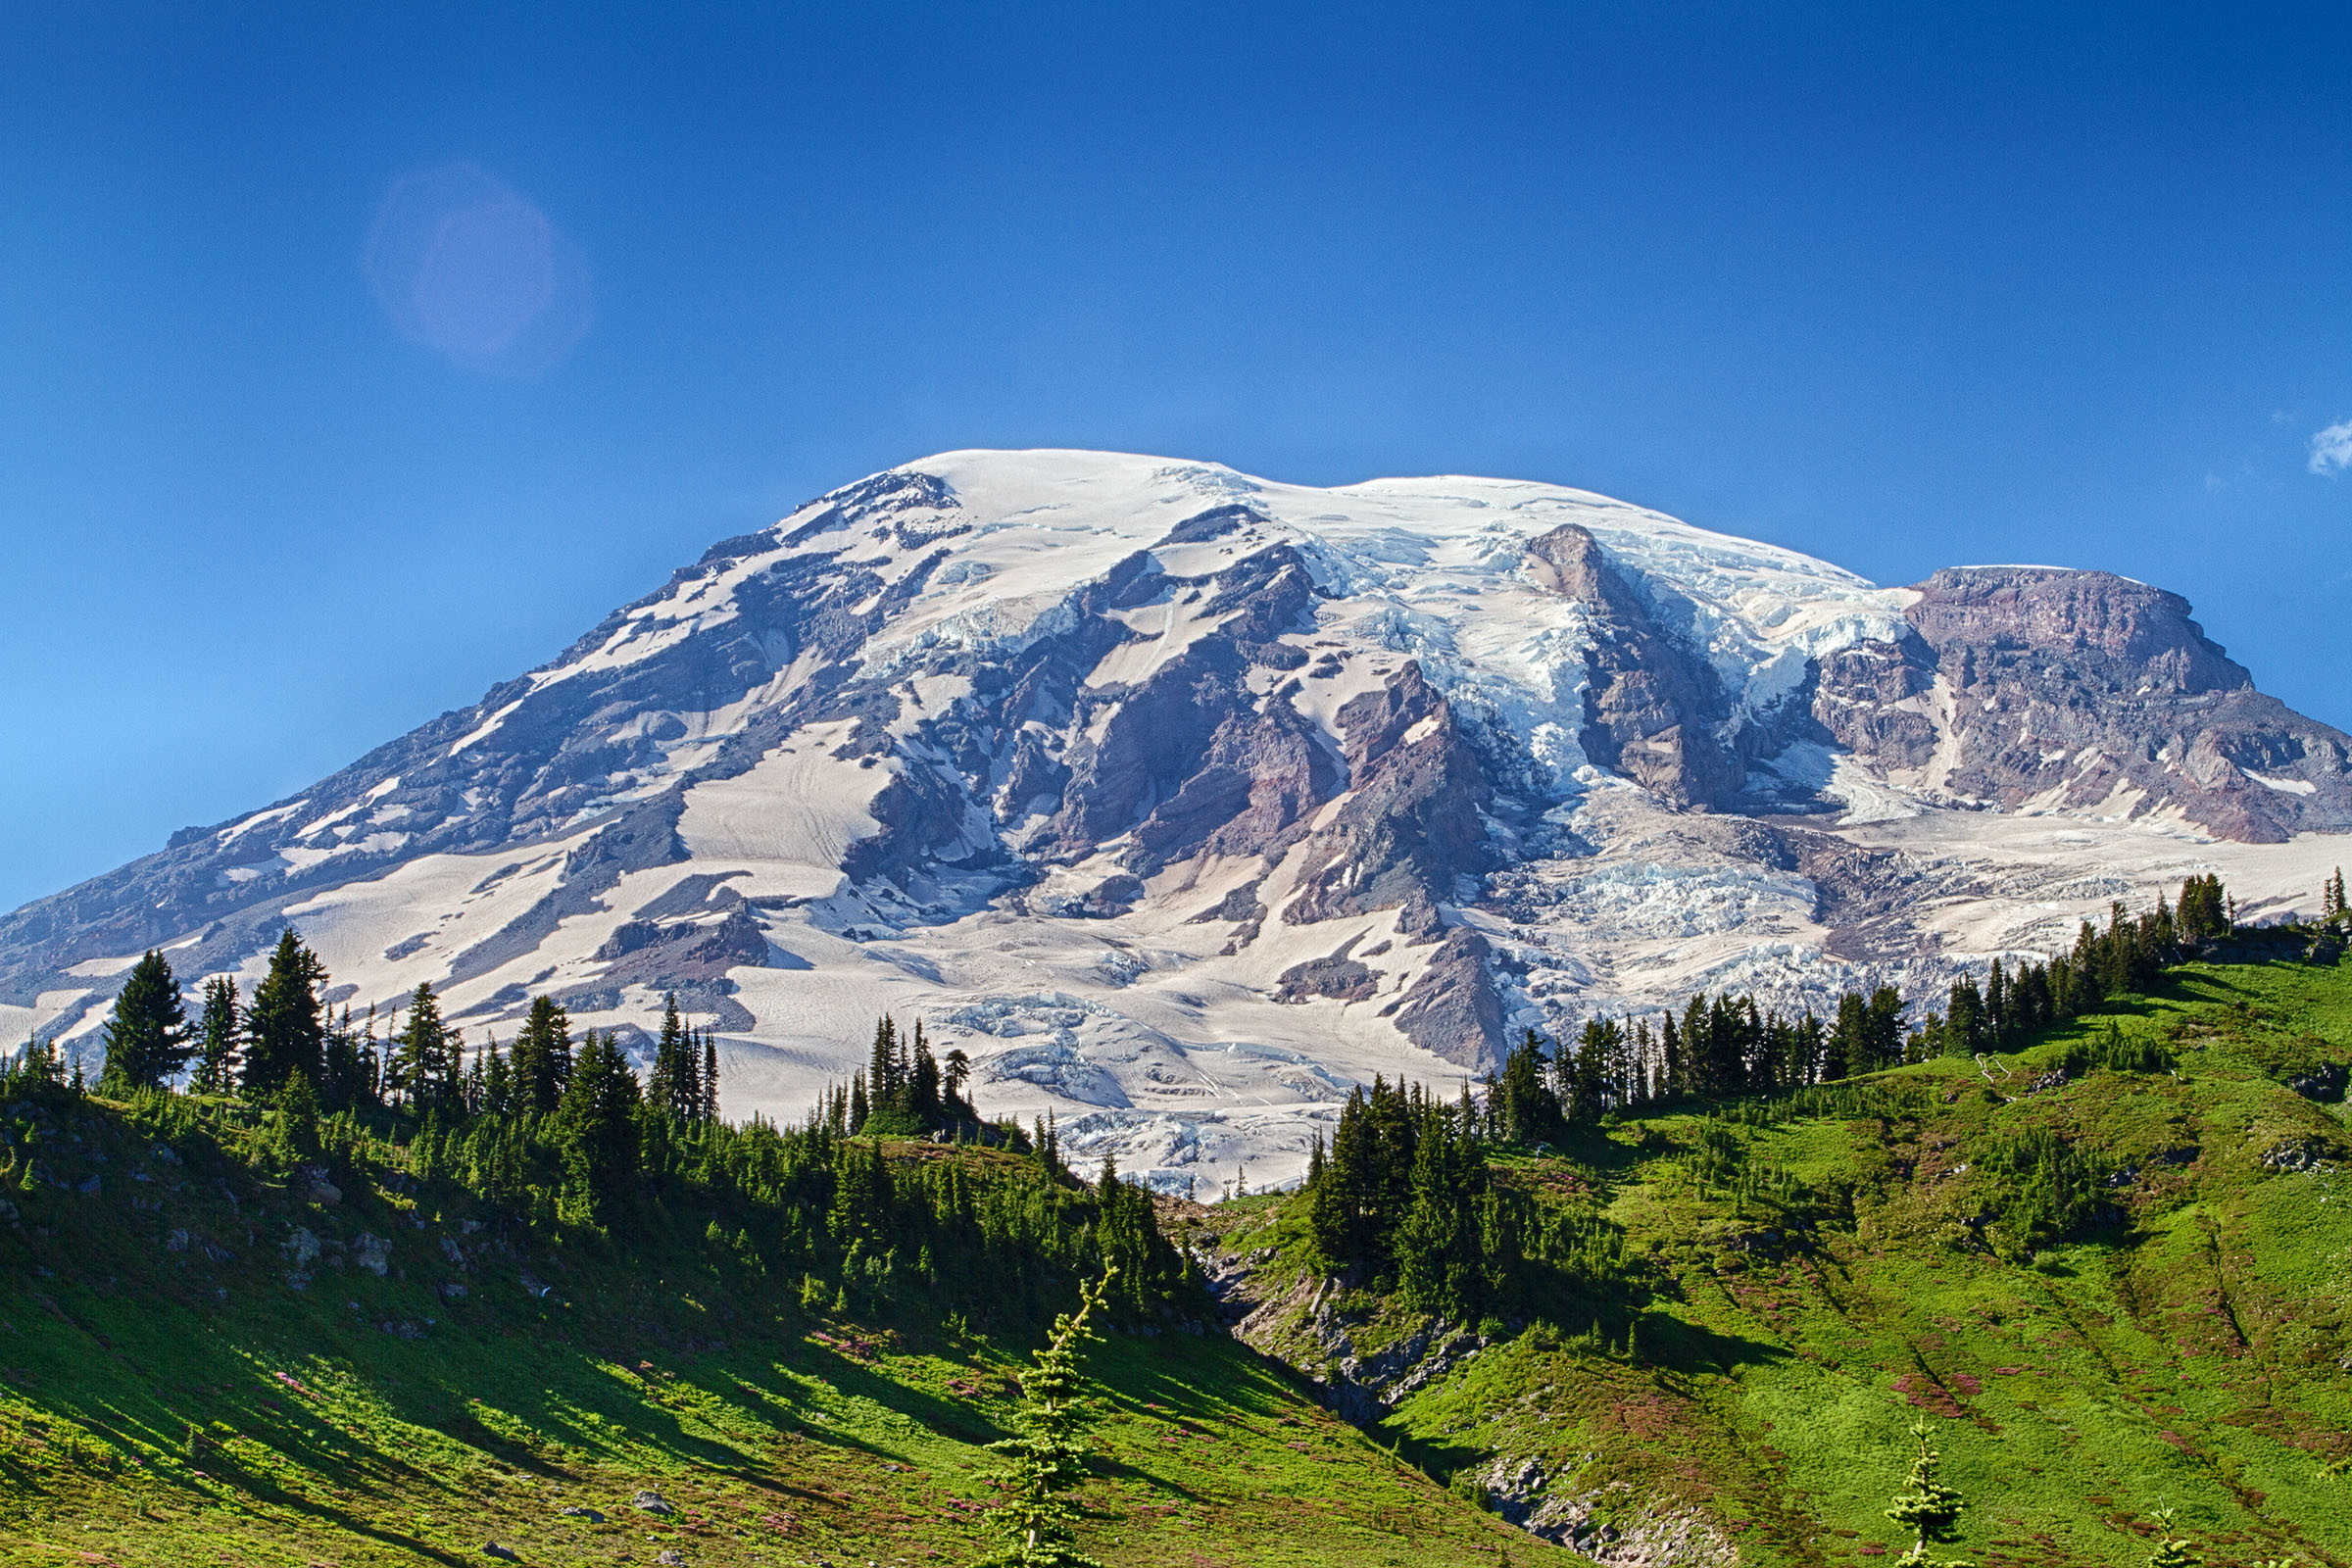 Mount rainer, washington photo